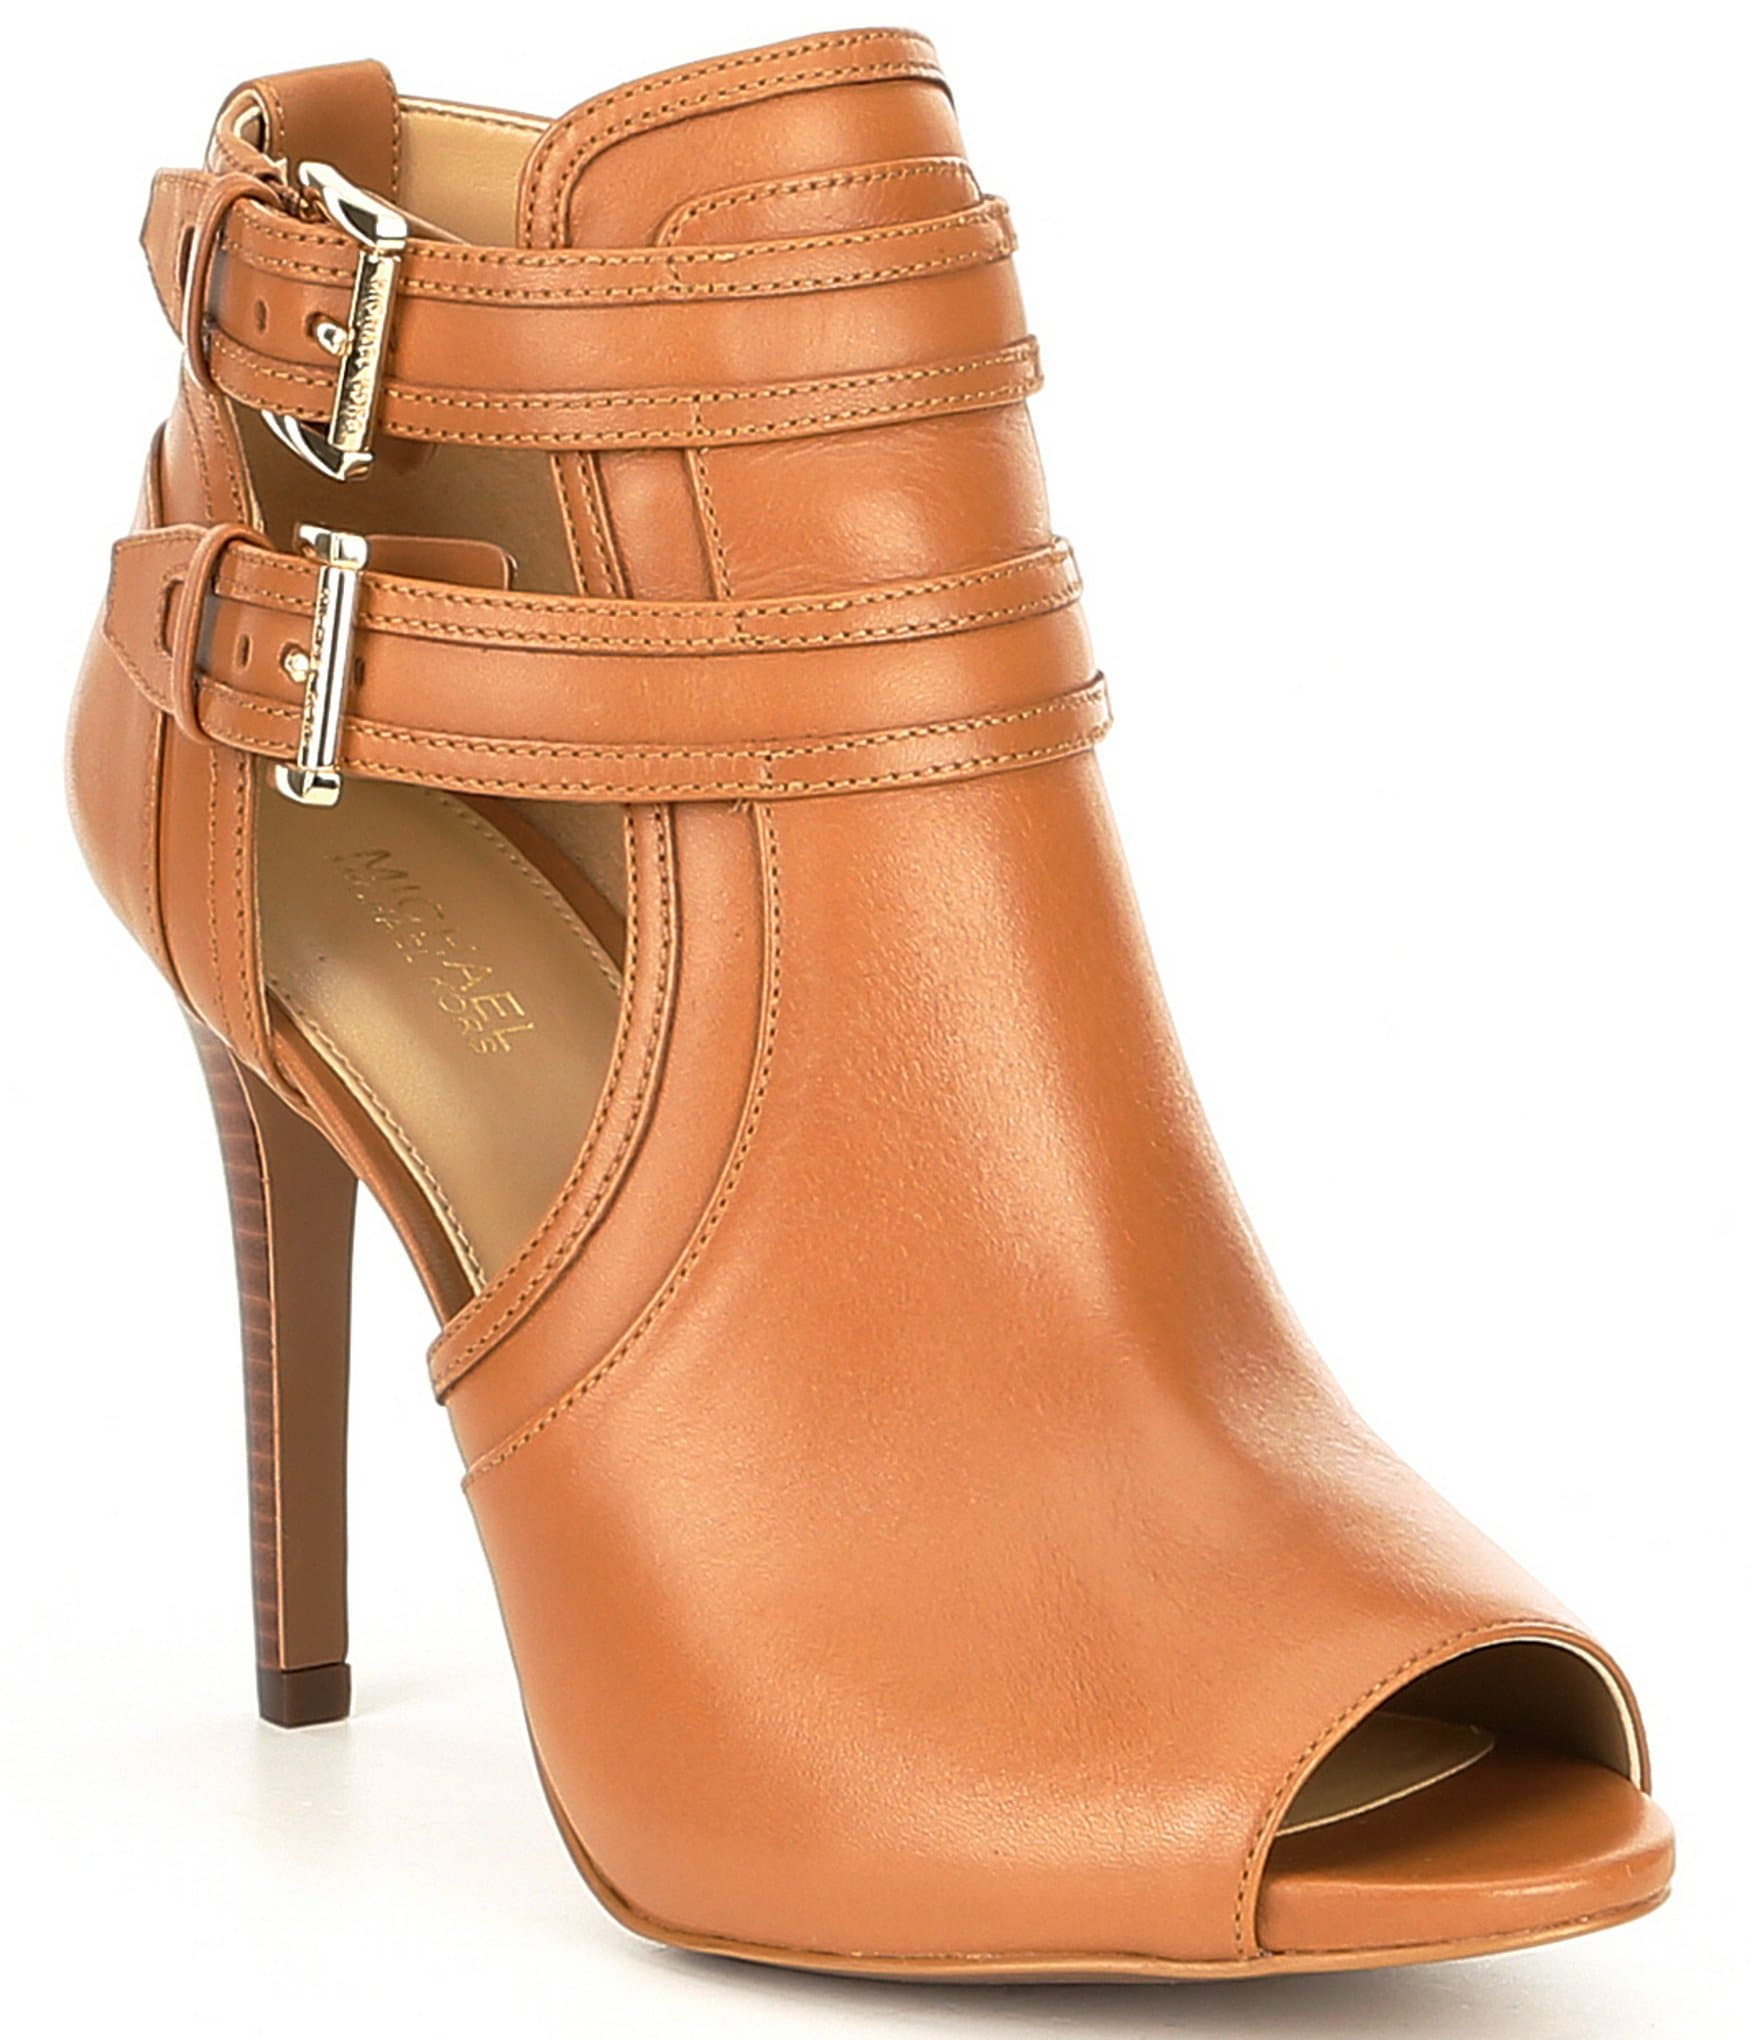 cd2d8af1c MICHAEL Michael Kors Blaze Leather Peep Toe Buckle Detail Booties |  Dillard's